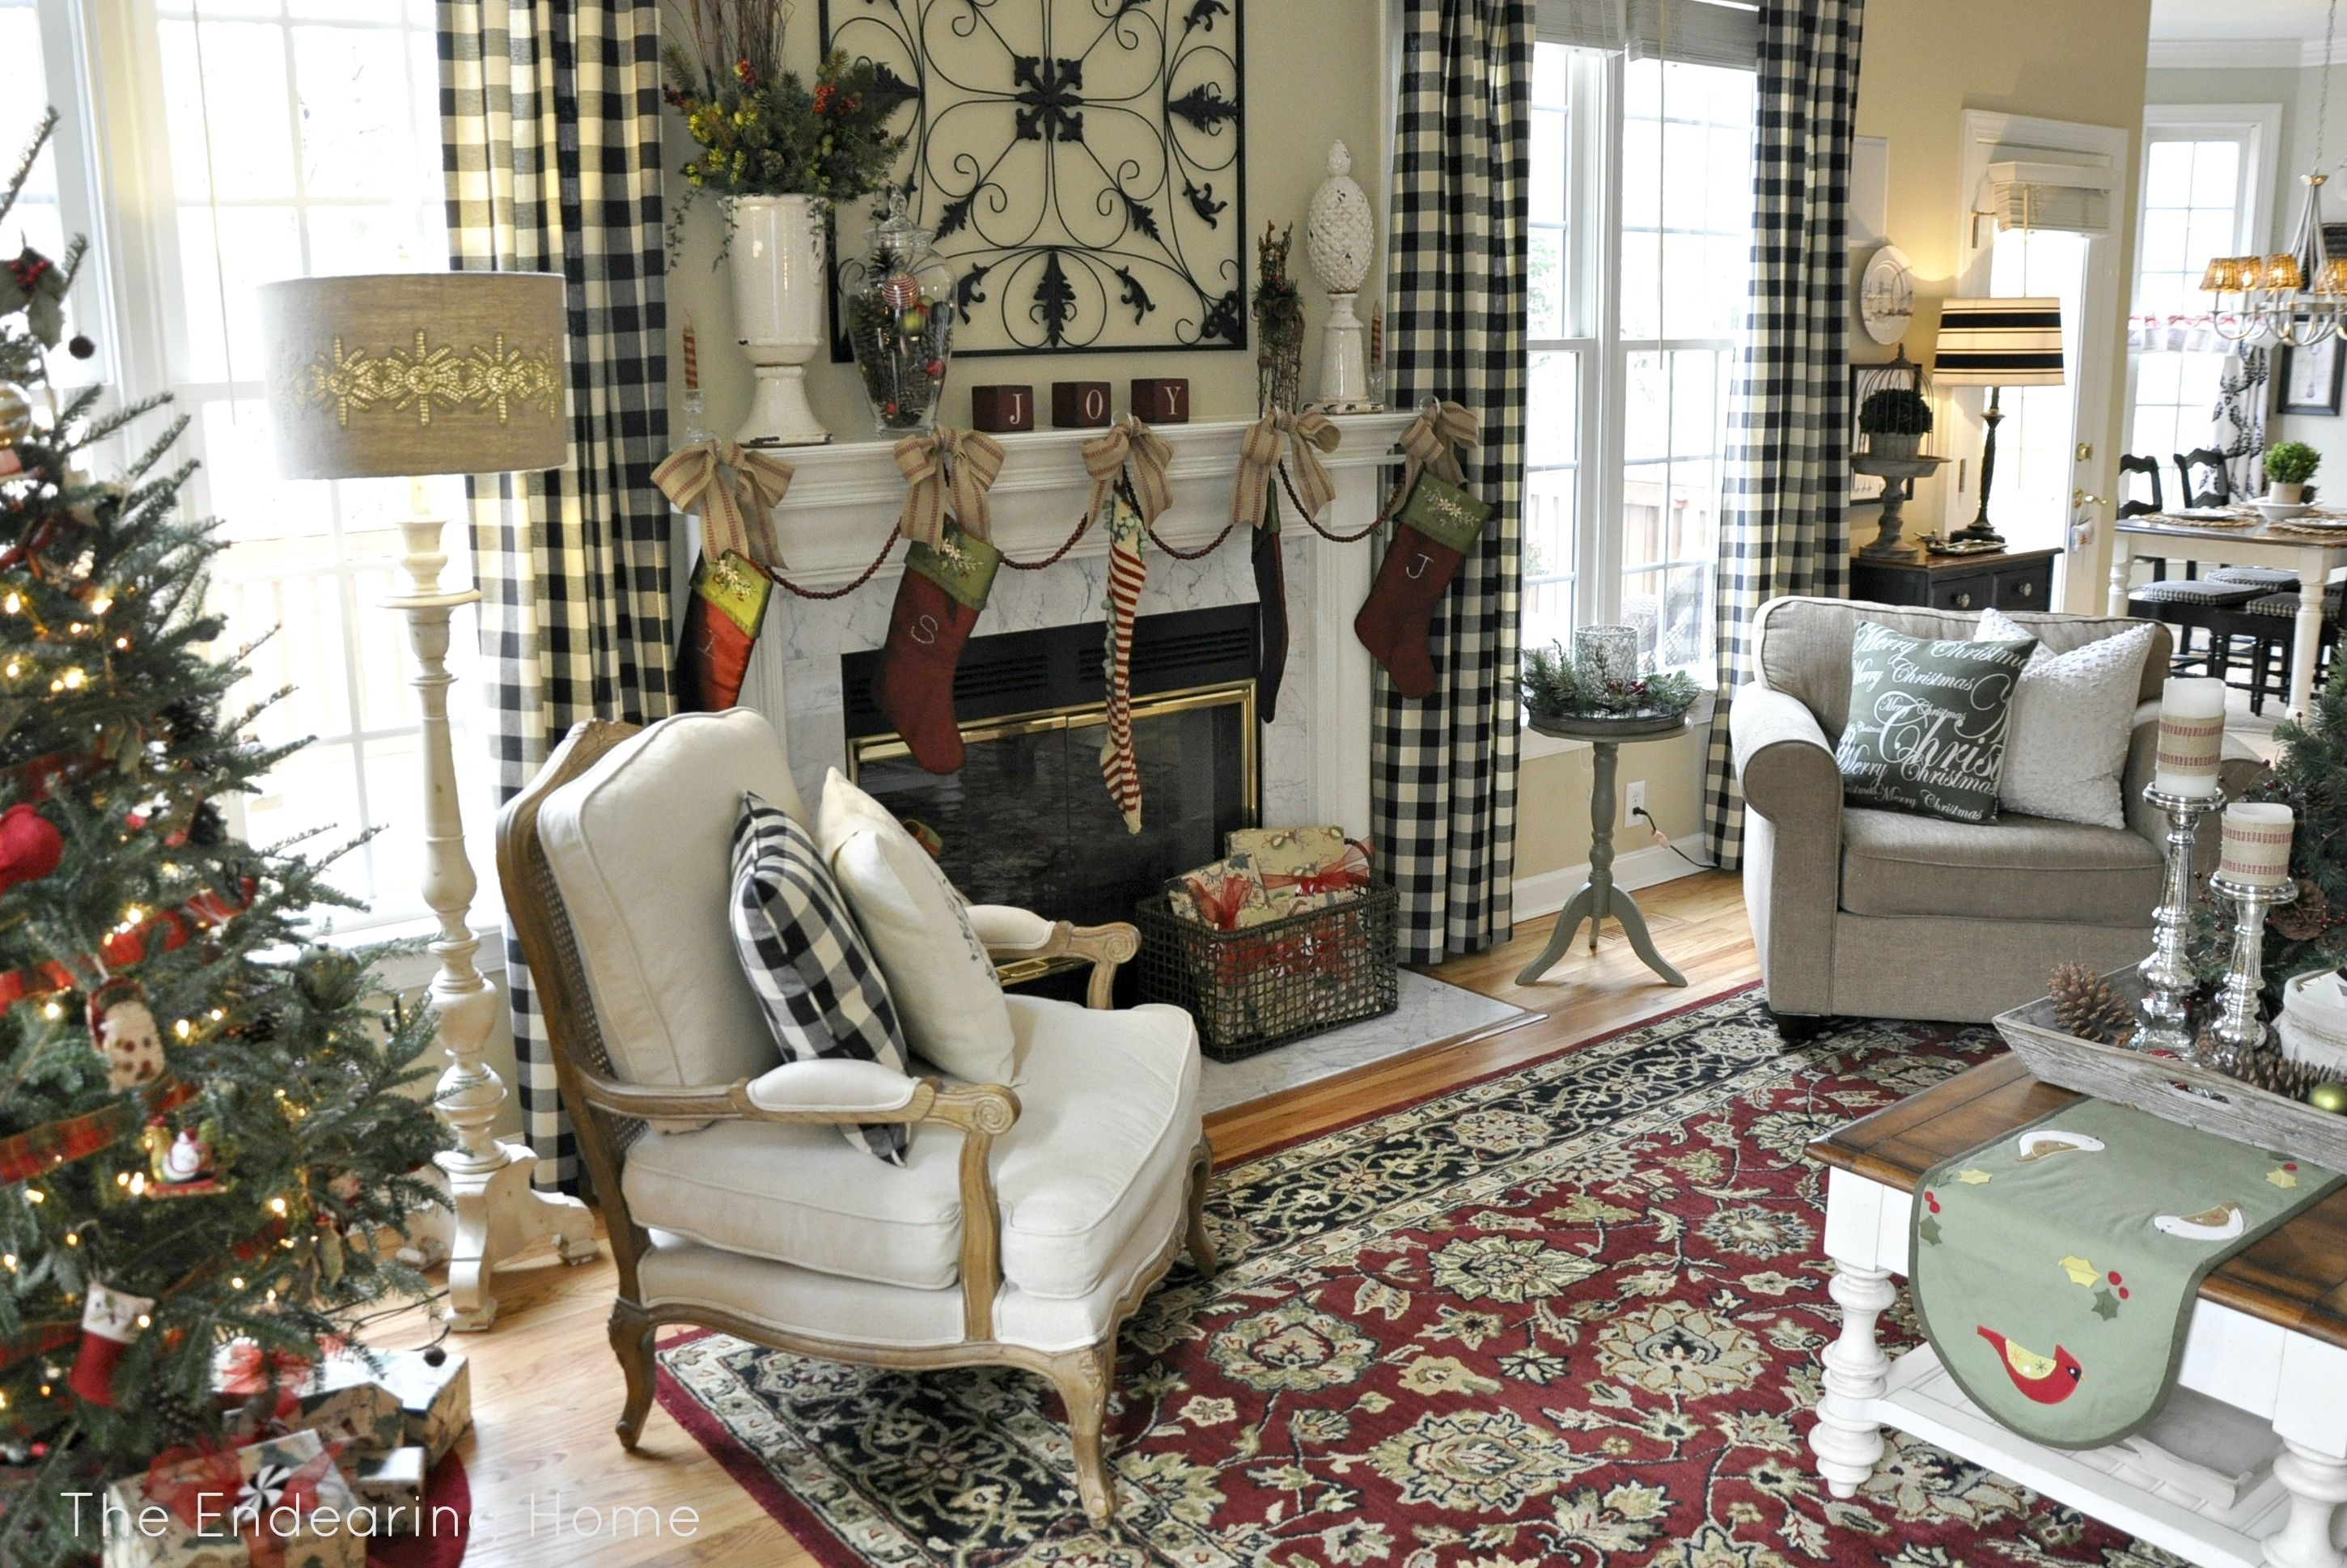 The endearing home restyle repurpose reorganize buffalo check curtains living room